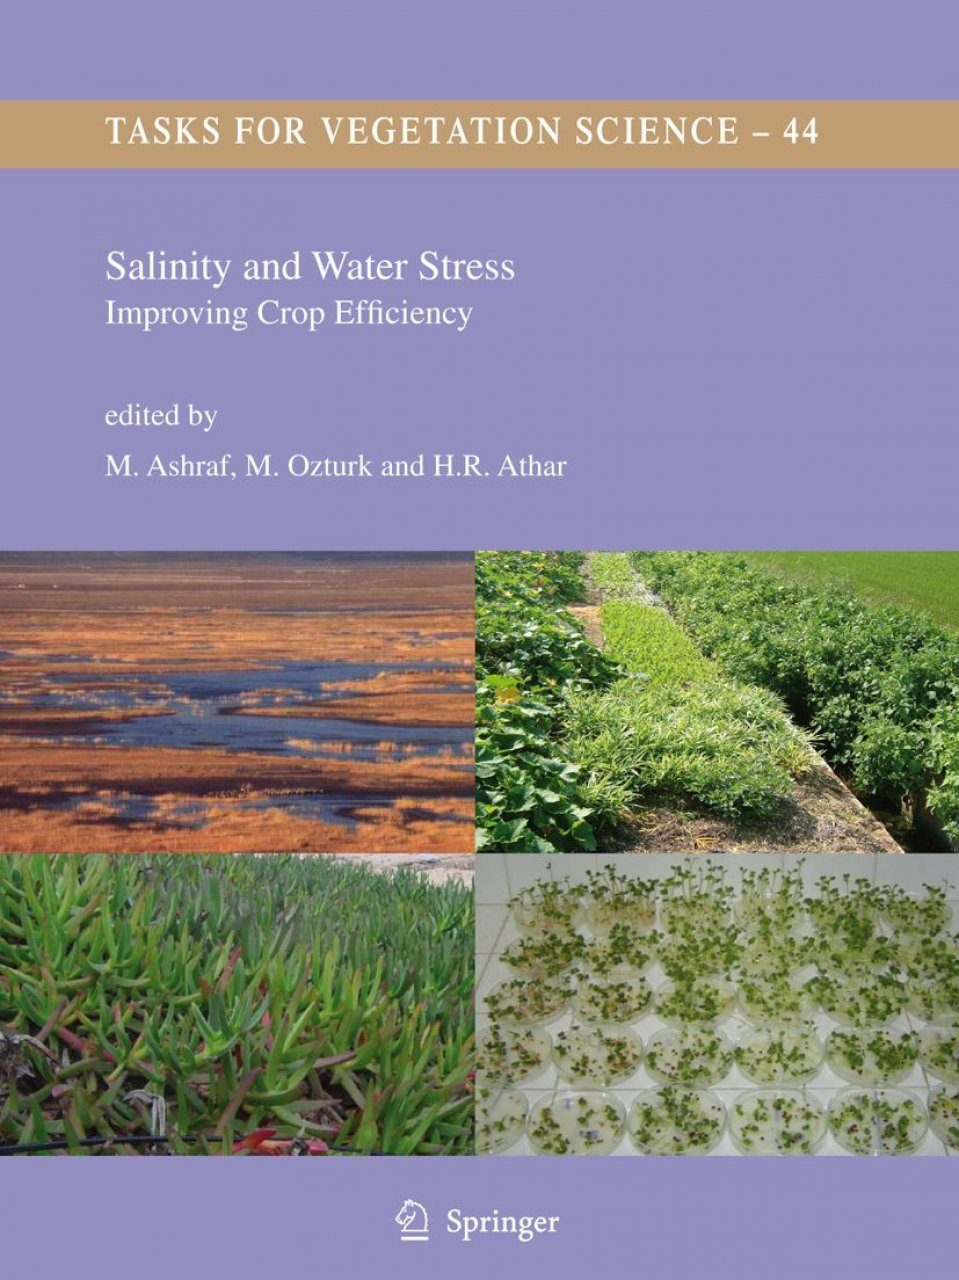 Salinity and Water Stress